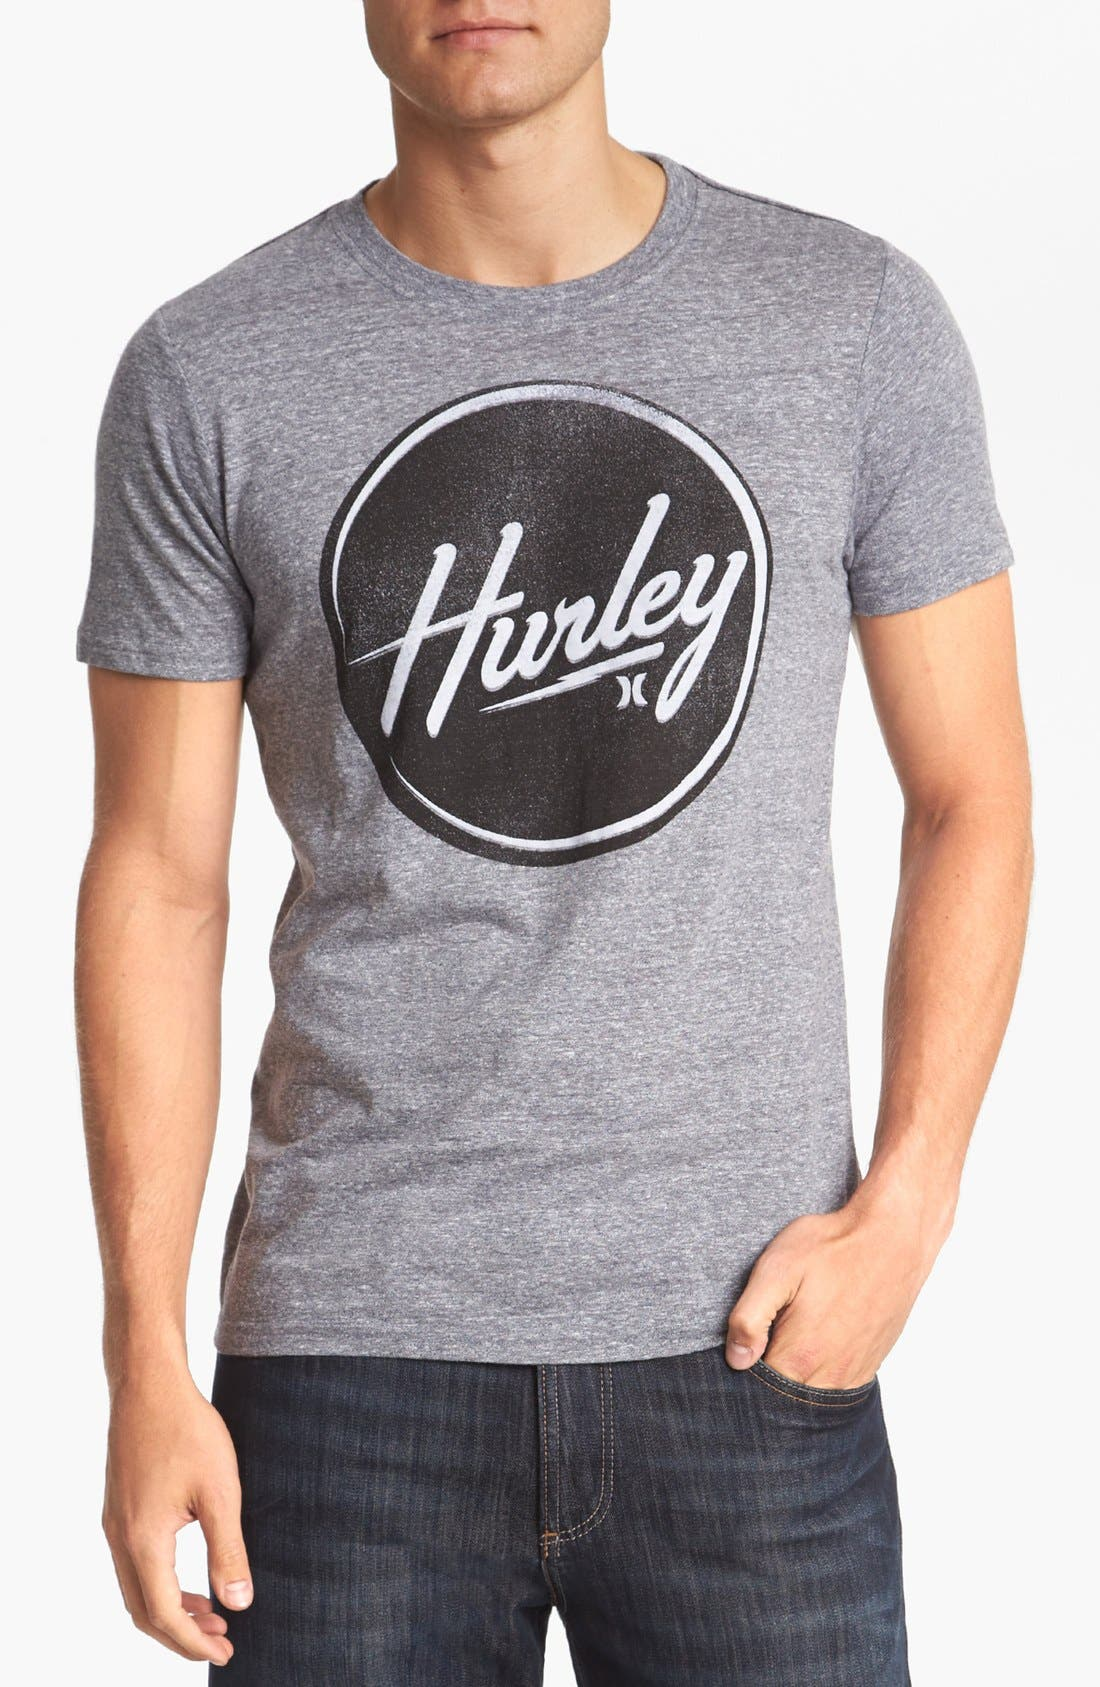 Alternate Image 1 Selected - Hurley 'Stamped Out' T-Shirt